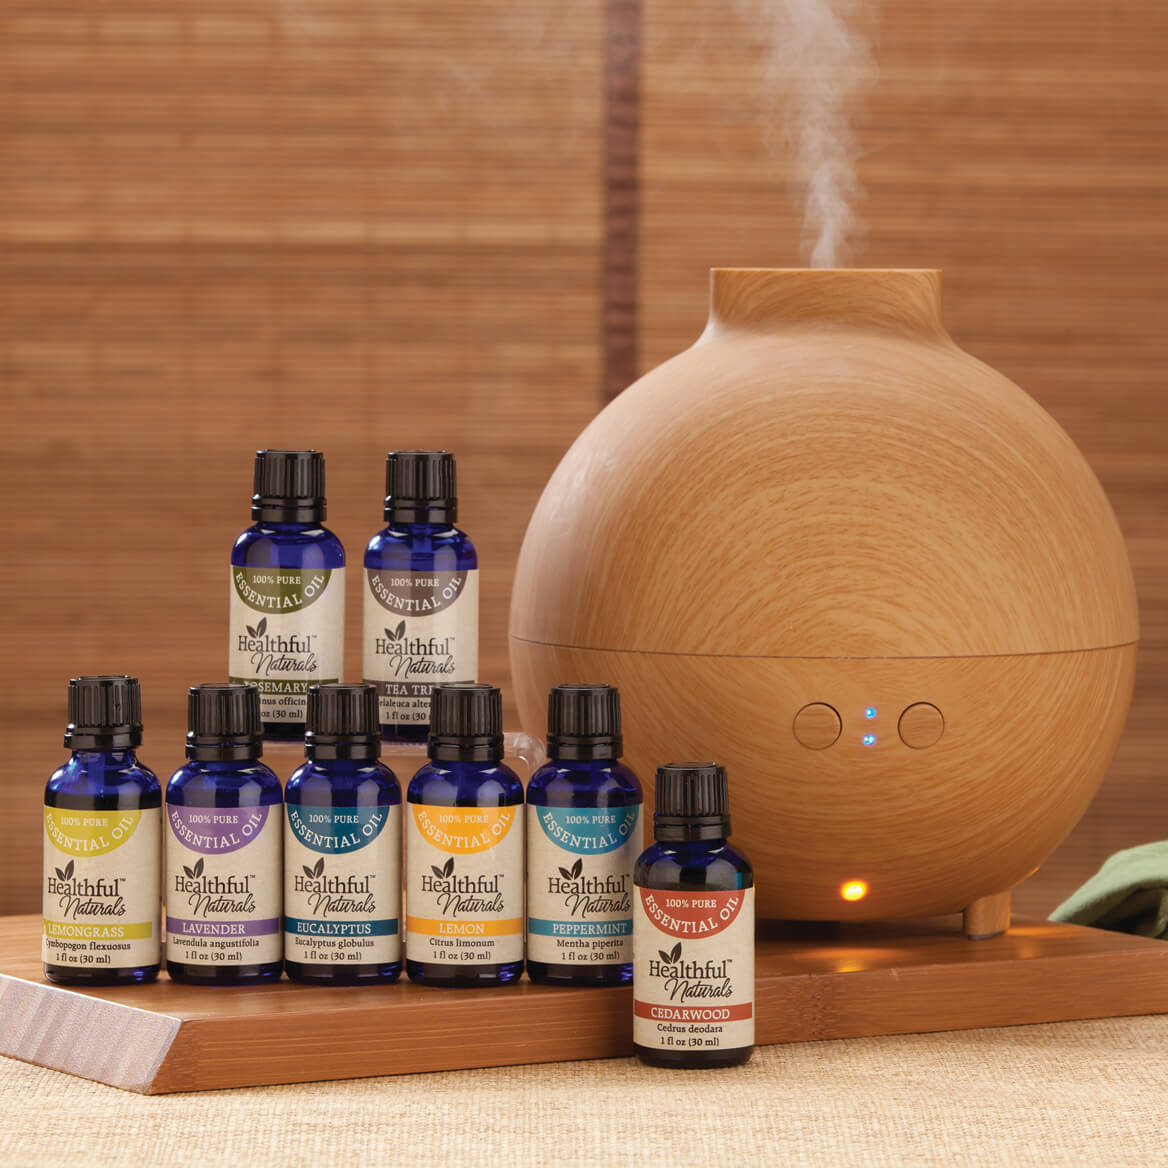 Healthful™ Naturals Deluxe Essential Oil Kit & 600 ml Diffuser-356538